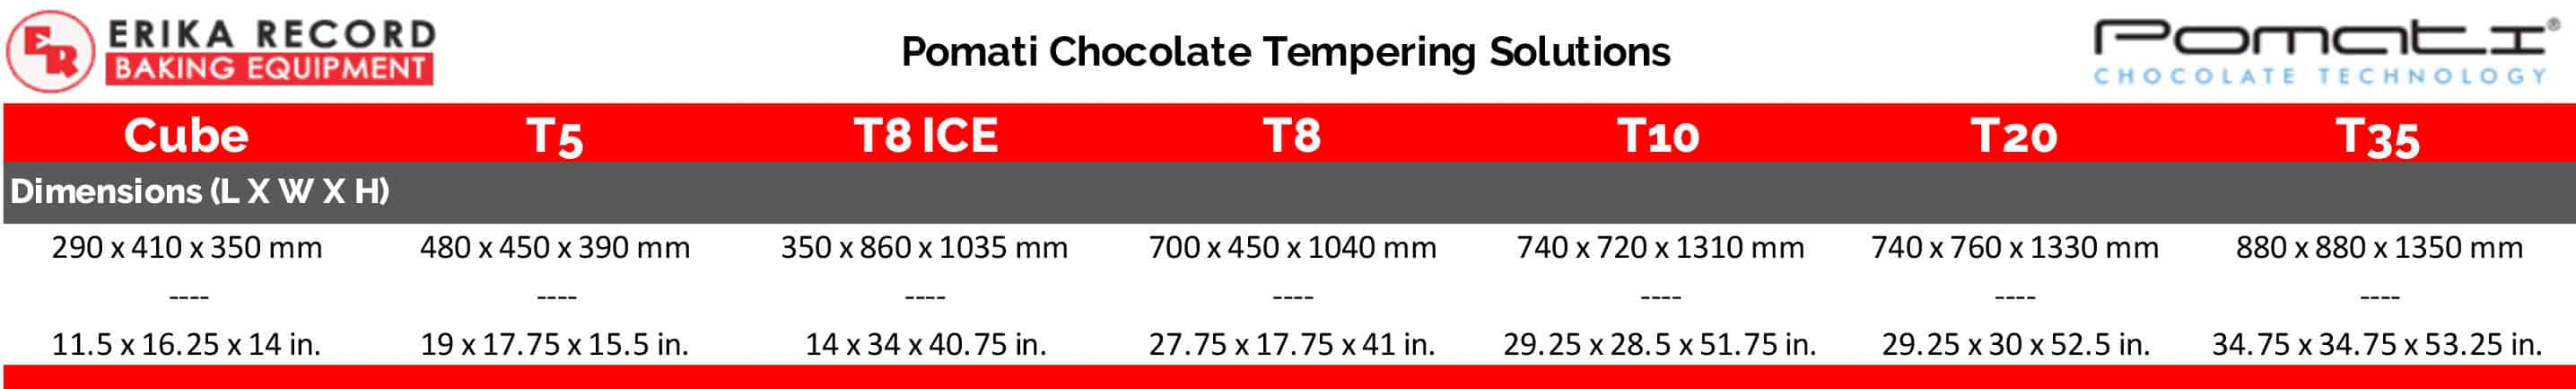 Chocolate Tempering Units | Pomati Production Equipment | Dimensions